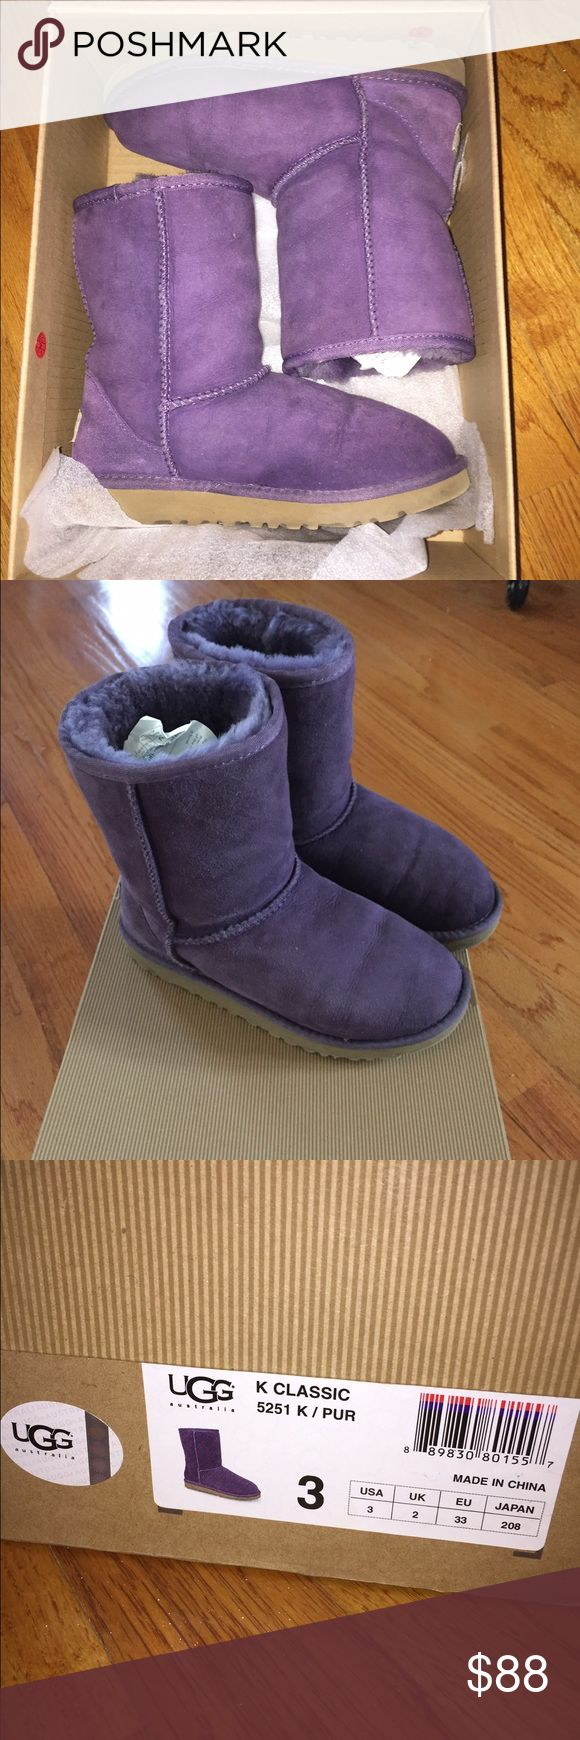 authentic ugg purple classic boots medium shaft 5 Purchased at ugg store, gently worn and not in snow. Well taken care of and before I store it away, cleaned with ugg care kit. In very good condition as you can see. It is a youth size 3. I usually wear a 5 in ugg women and these fit perfectly fine with normal sport socks. Always worn with socks. No major toe crying and when stored, I stuff then to keep shape. no stains that I can see and no tear or loose threads. UGG Shoes Winter & Rain…